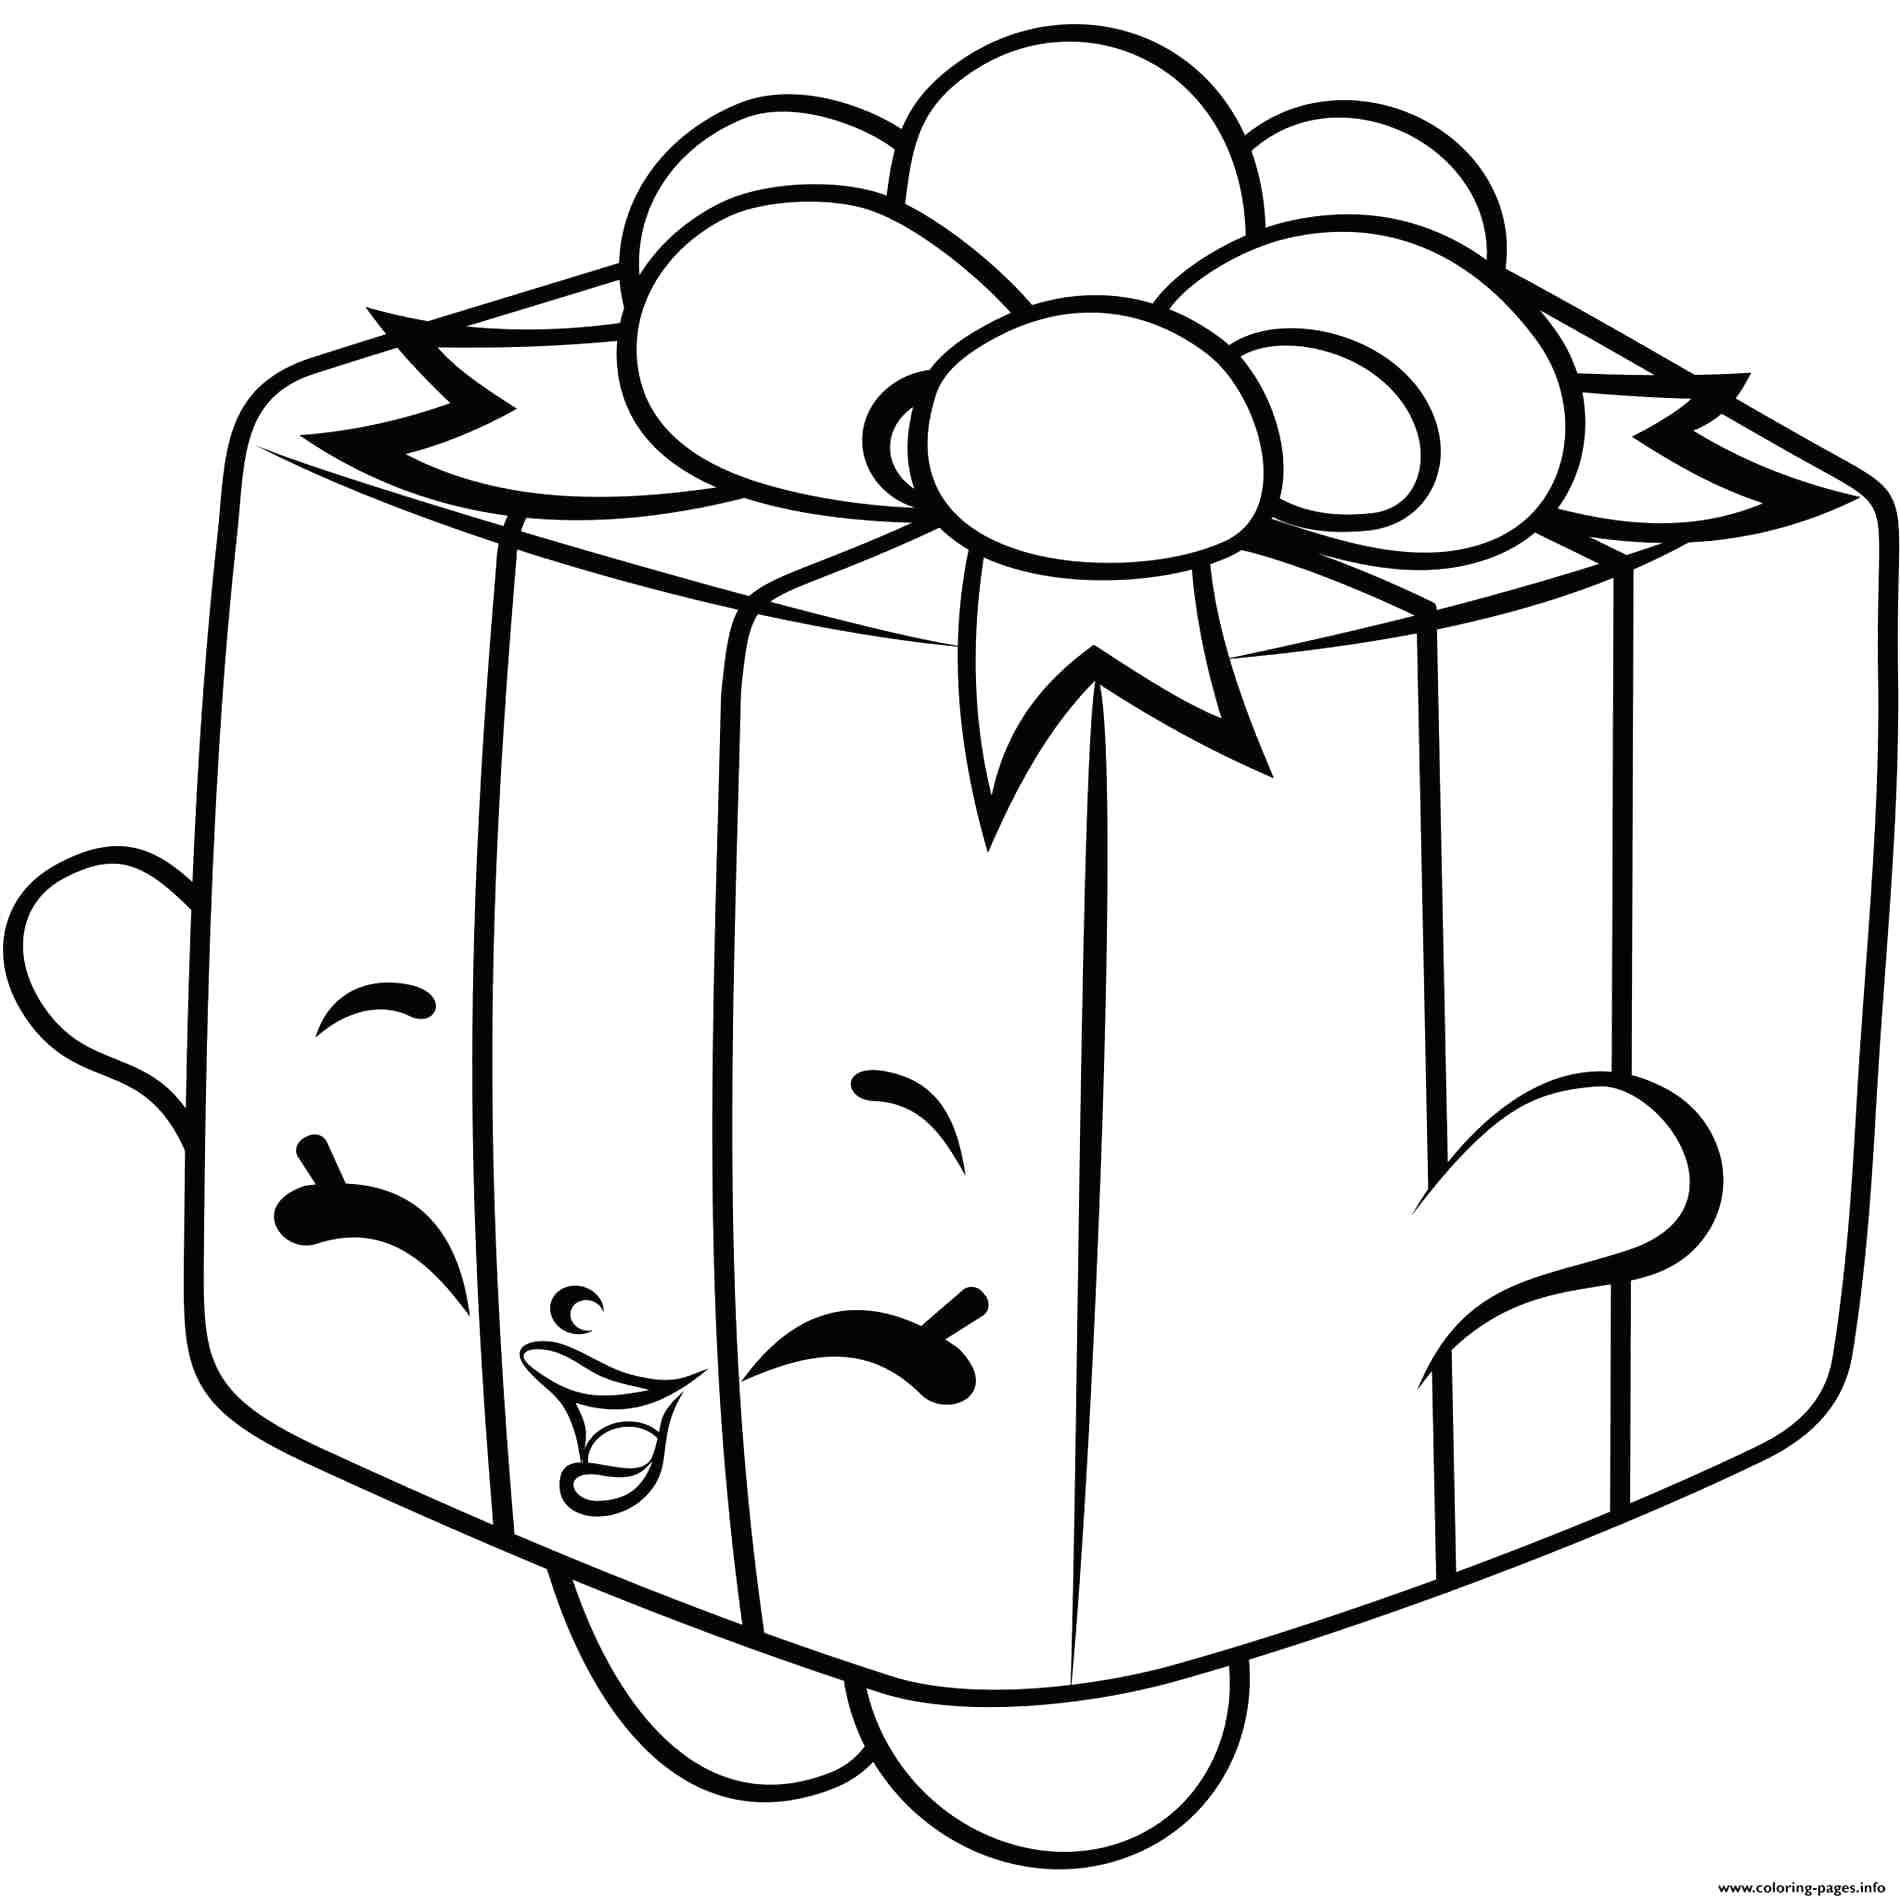 Birthday Gift Drawing at GetDrawings.com | Free for personal use ... for Birthday Gift Clipart Black And White  61obs